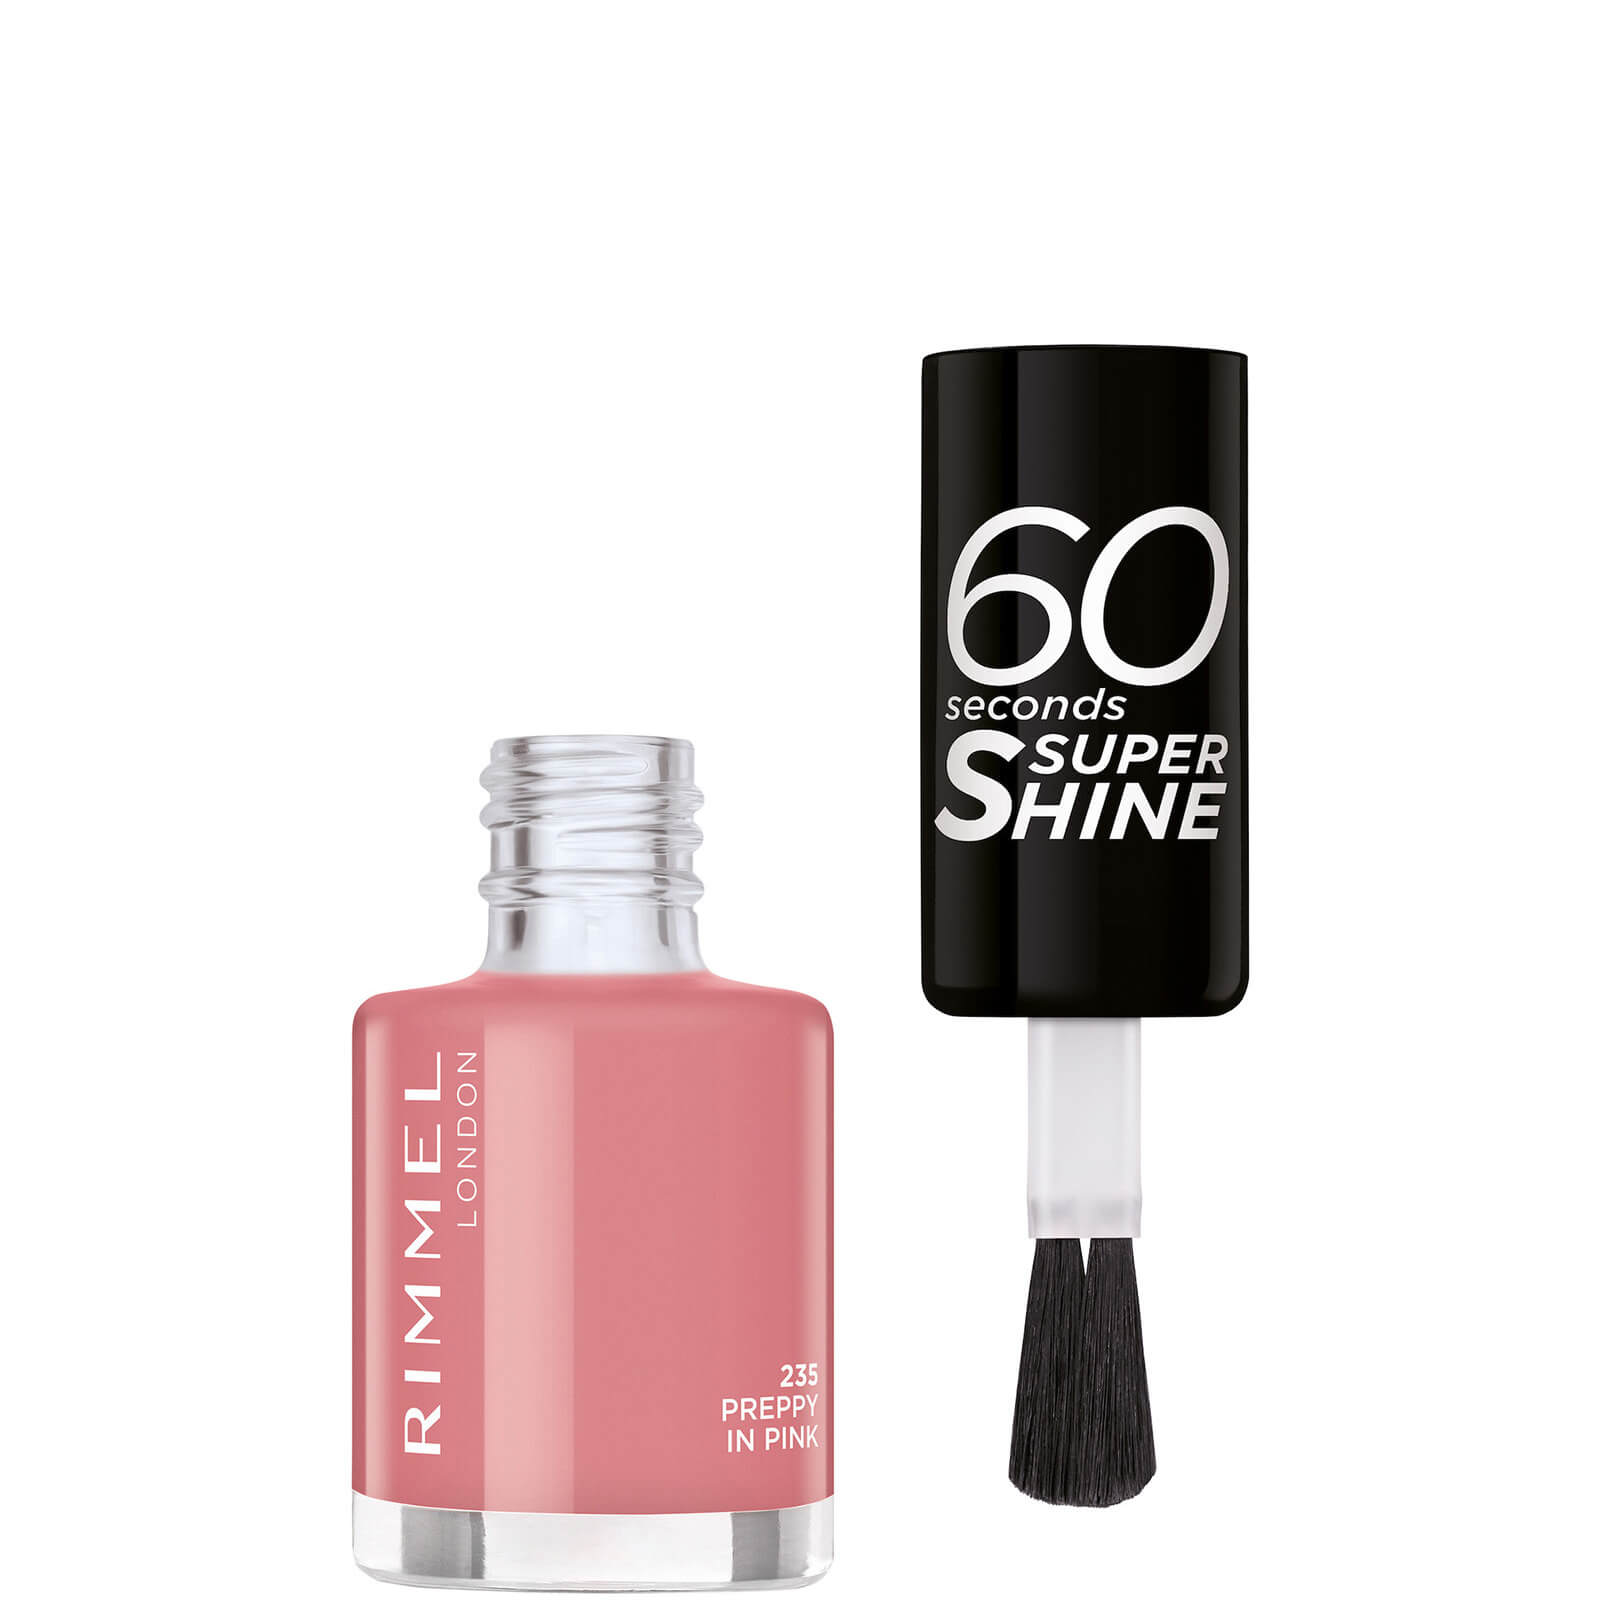 Rimmel 60 Seconds Nail Polish 8ml (Various Shades) - Preppy in Pink